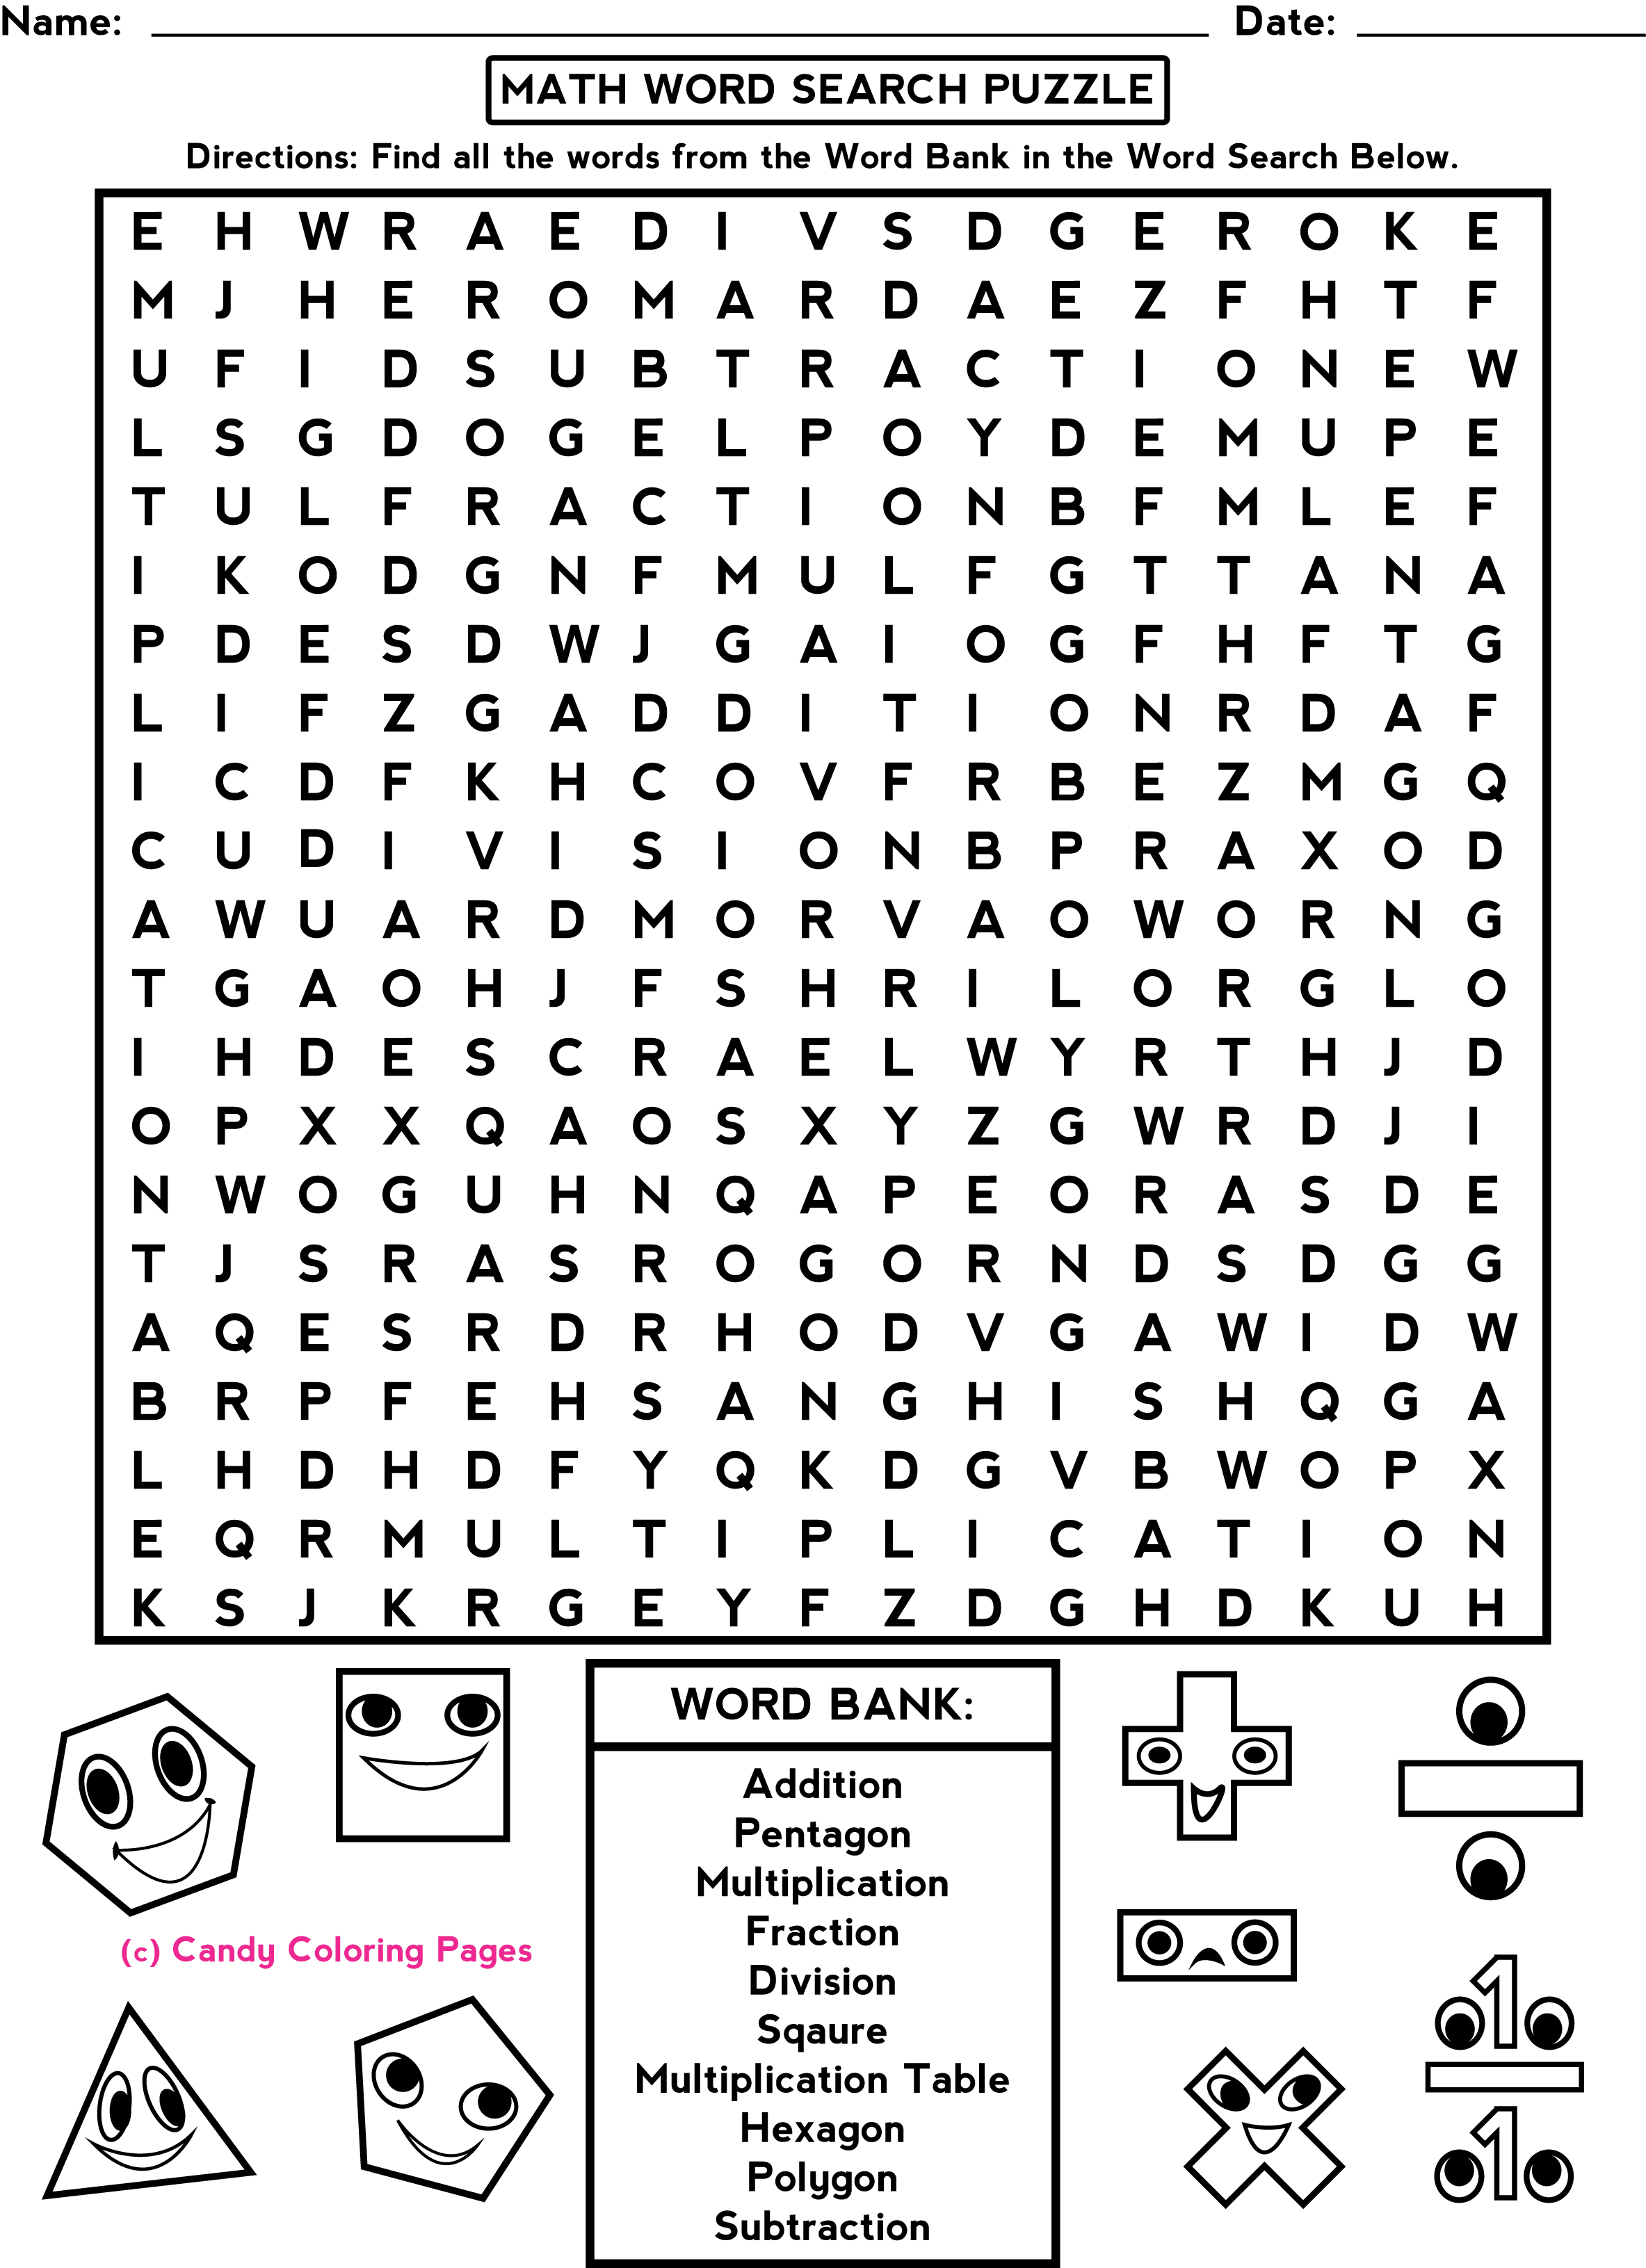 Printables 5th Grade Math Worksheets Pdf penny candy math worksheets educational sites for kids puzzles polygons grade worksheets